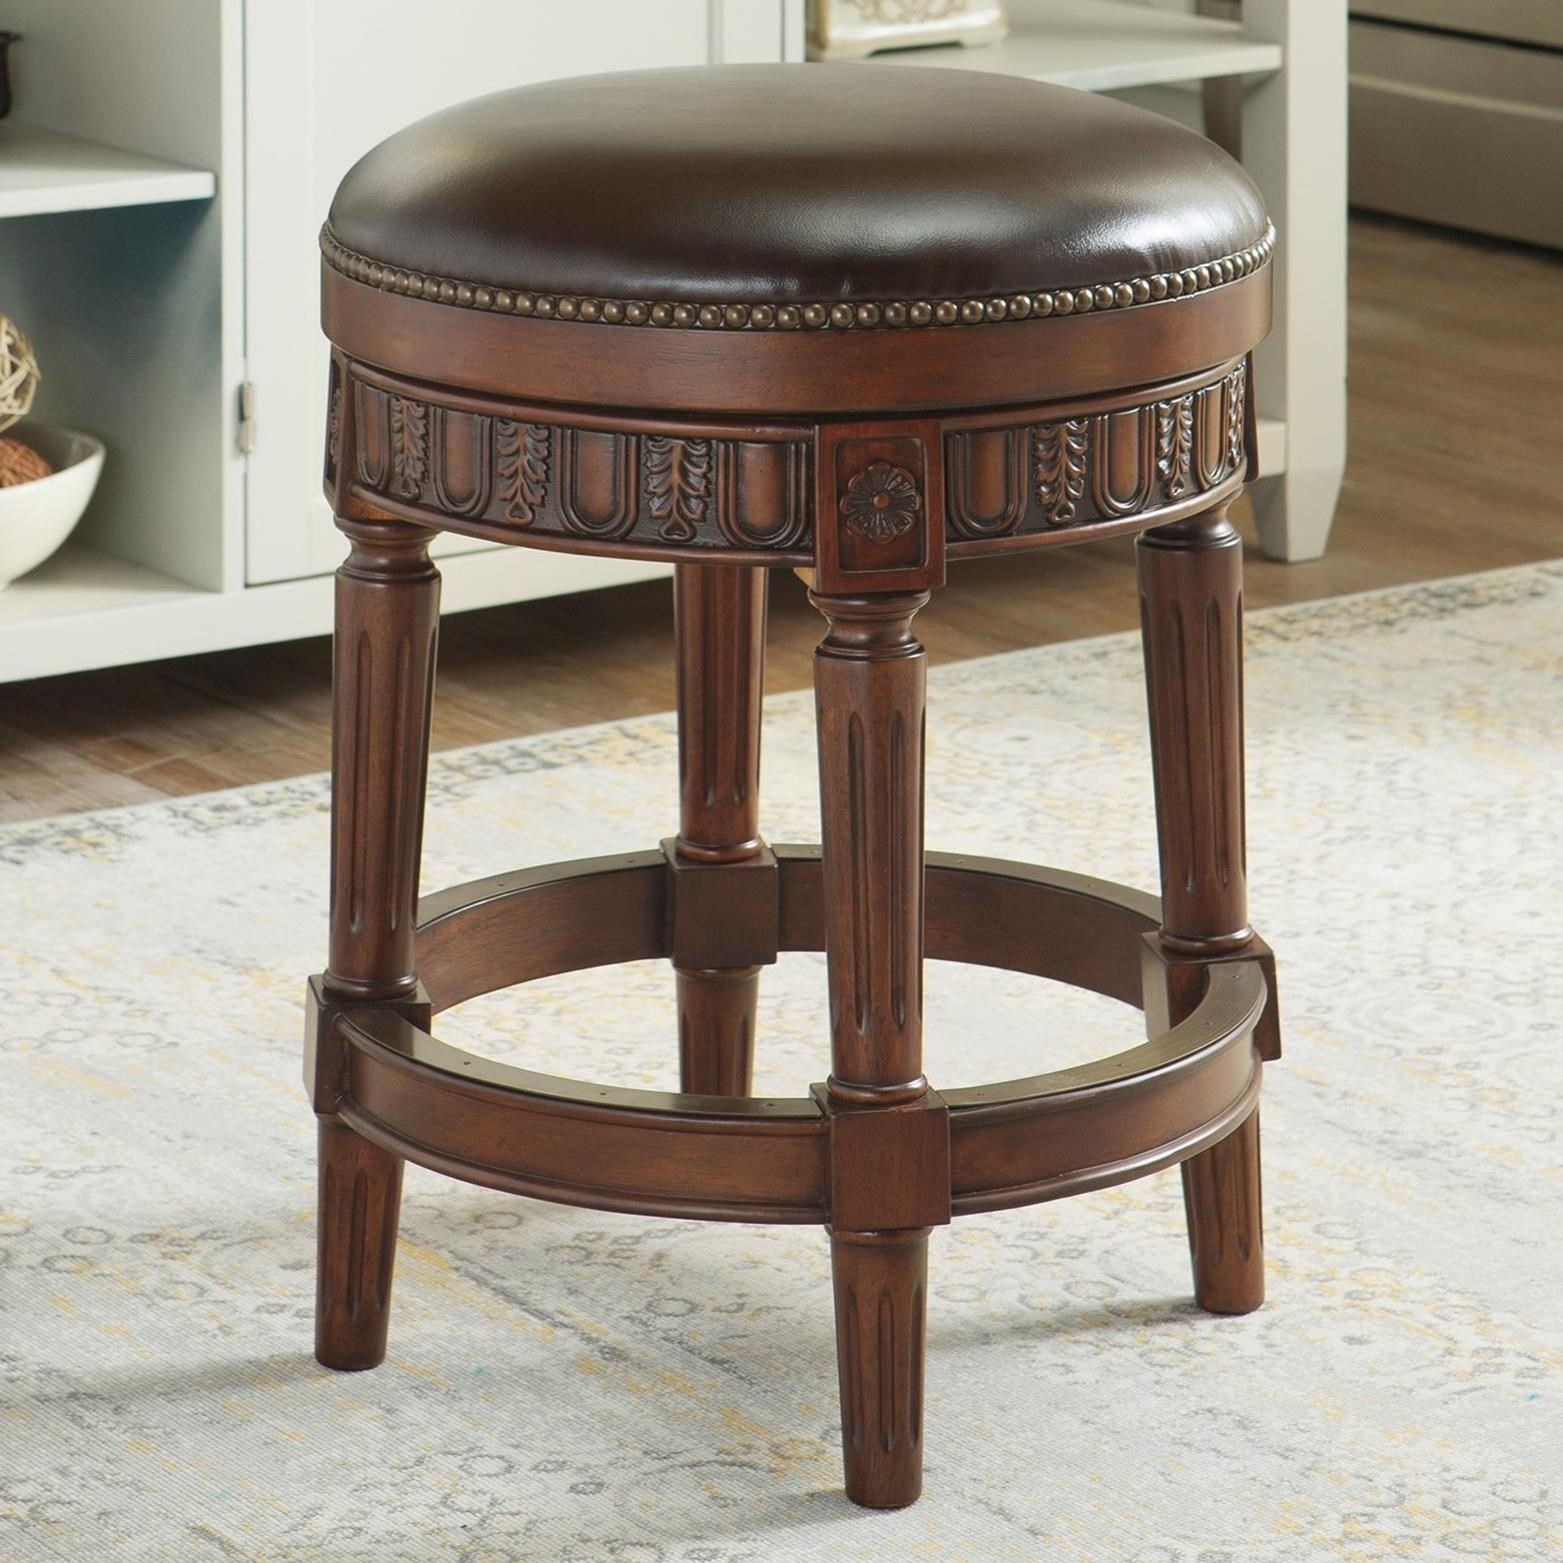 Millennium North Shore Upholstered Swivel Stool - Item Number: D553-024